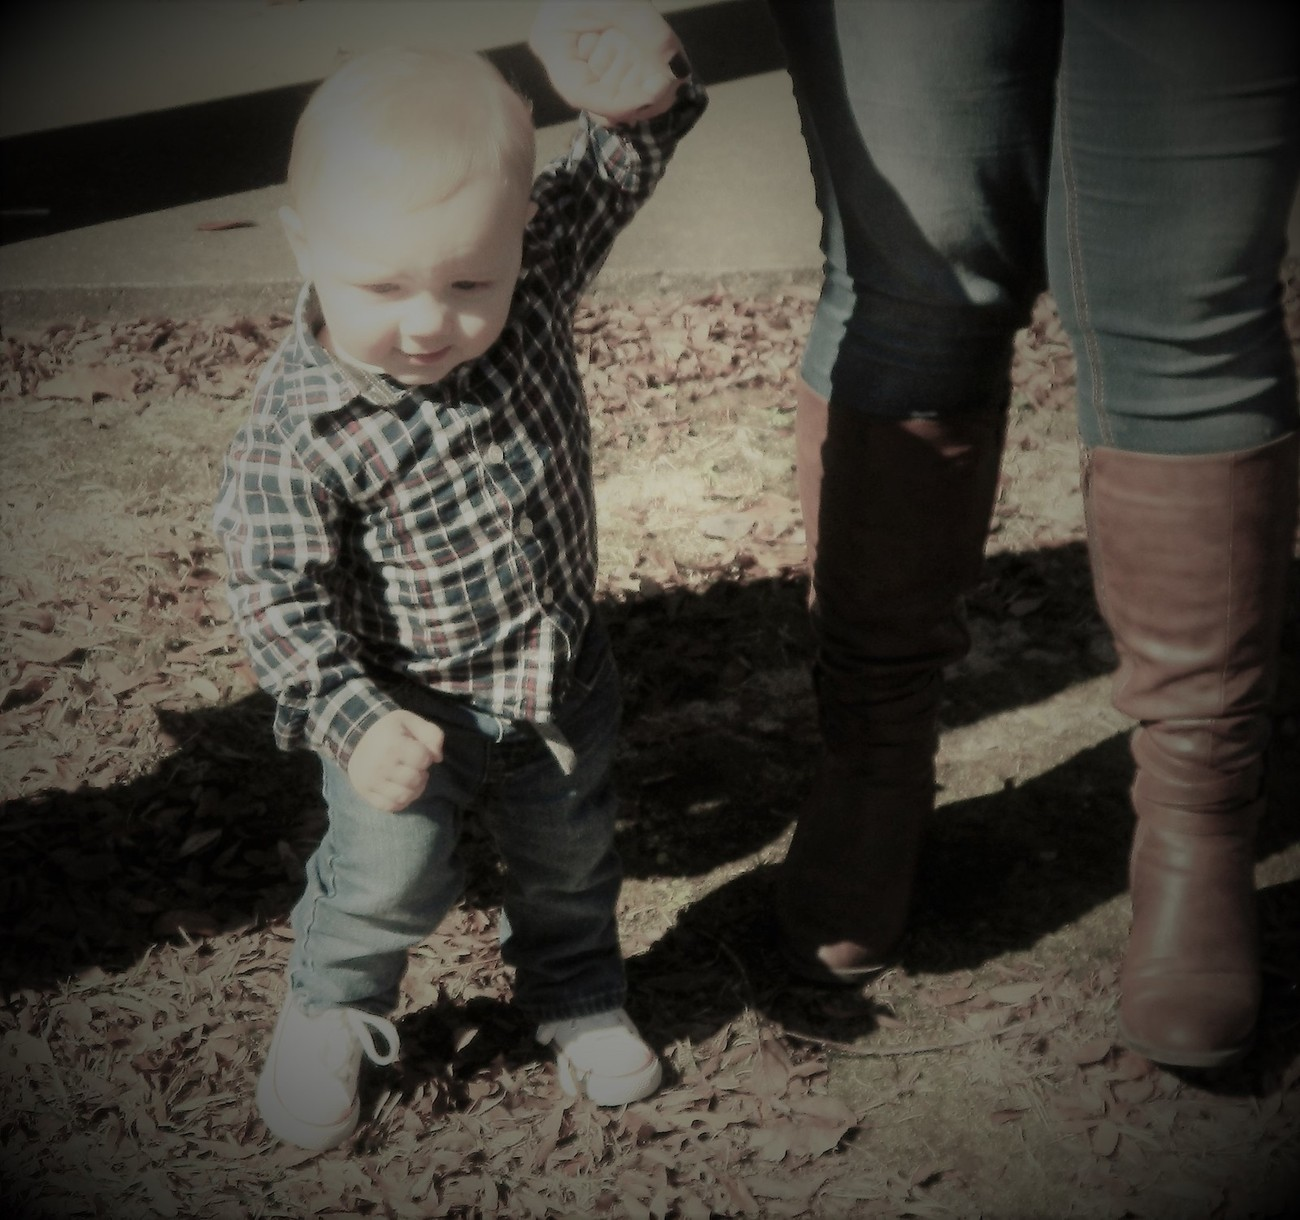 Micah's mom teaching him to walk at 10 months old.....and Micah teaching mom how to have fun again at the park.